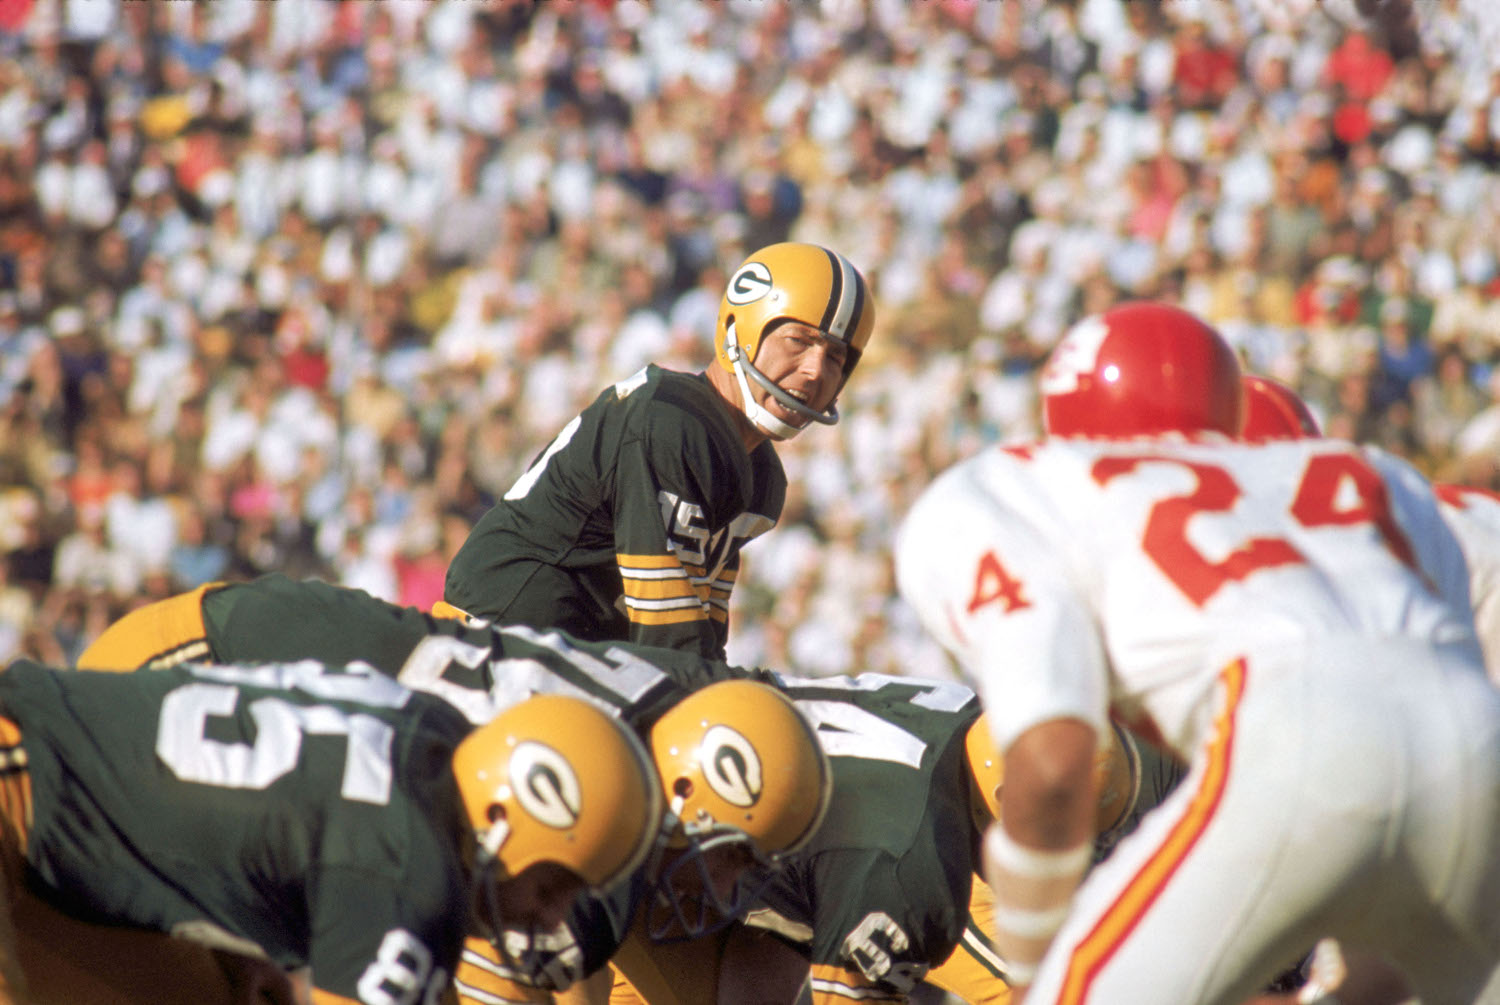 Bart Starr of the Green Bay Packers during Super Bowl I